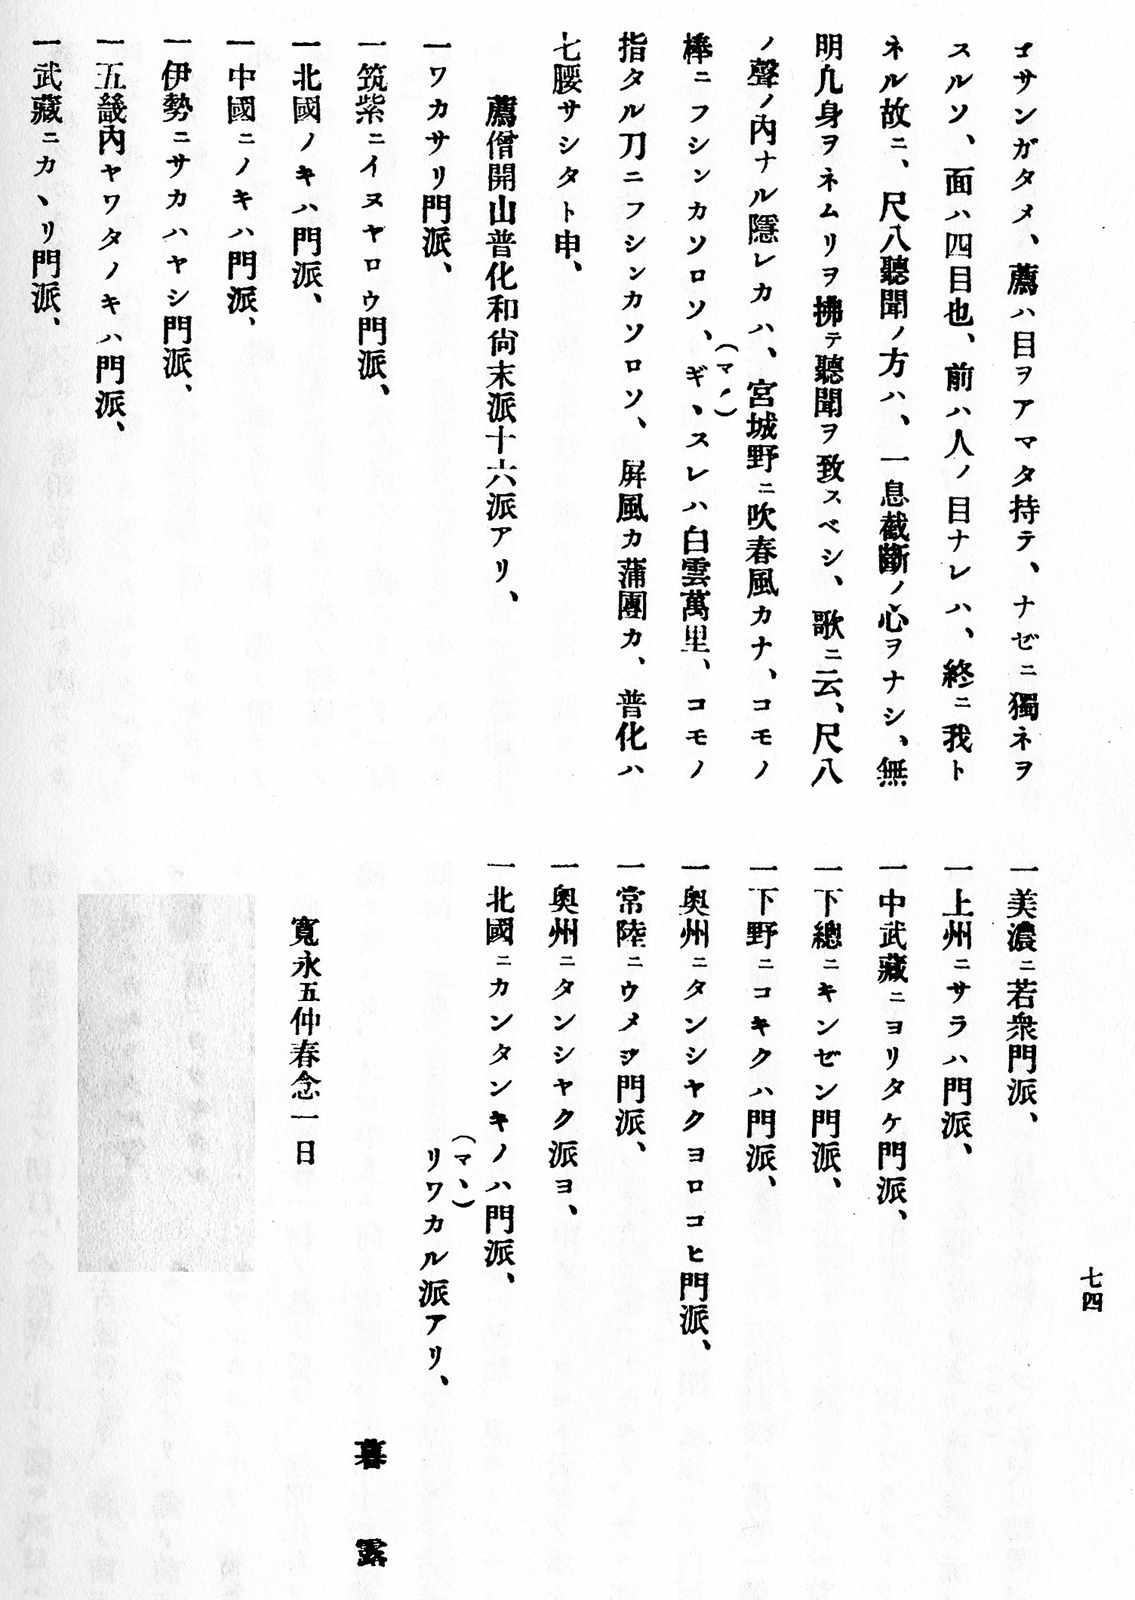 'Kaidō honsoku' text in Mori, 1981, p. 73